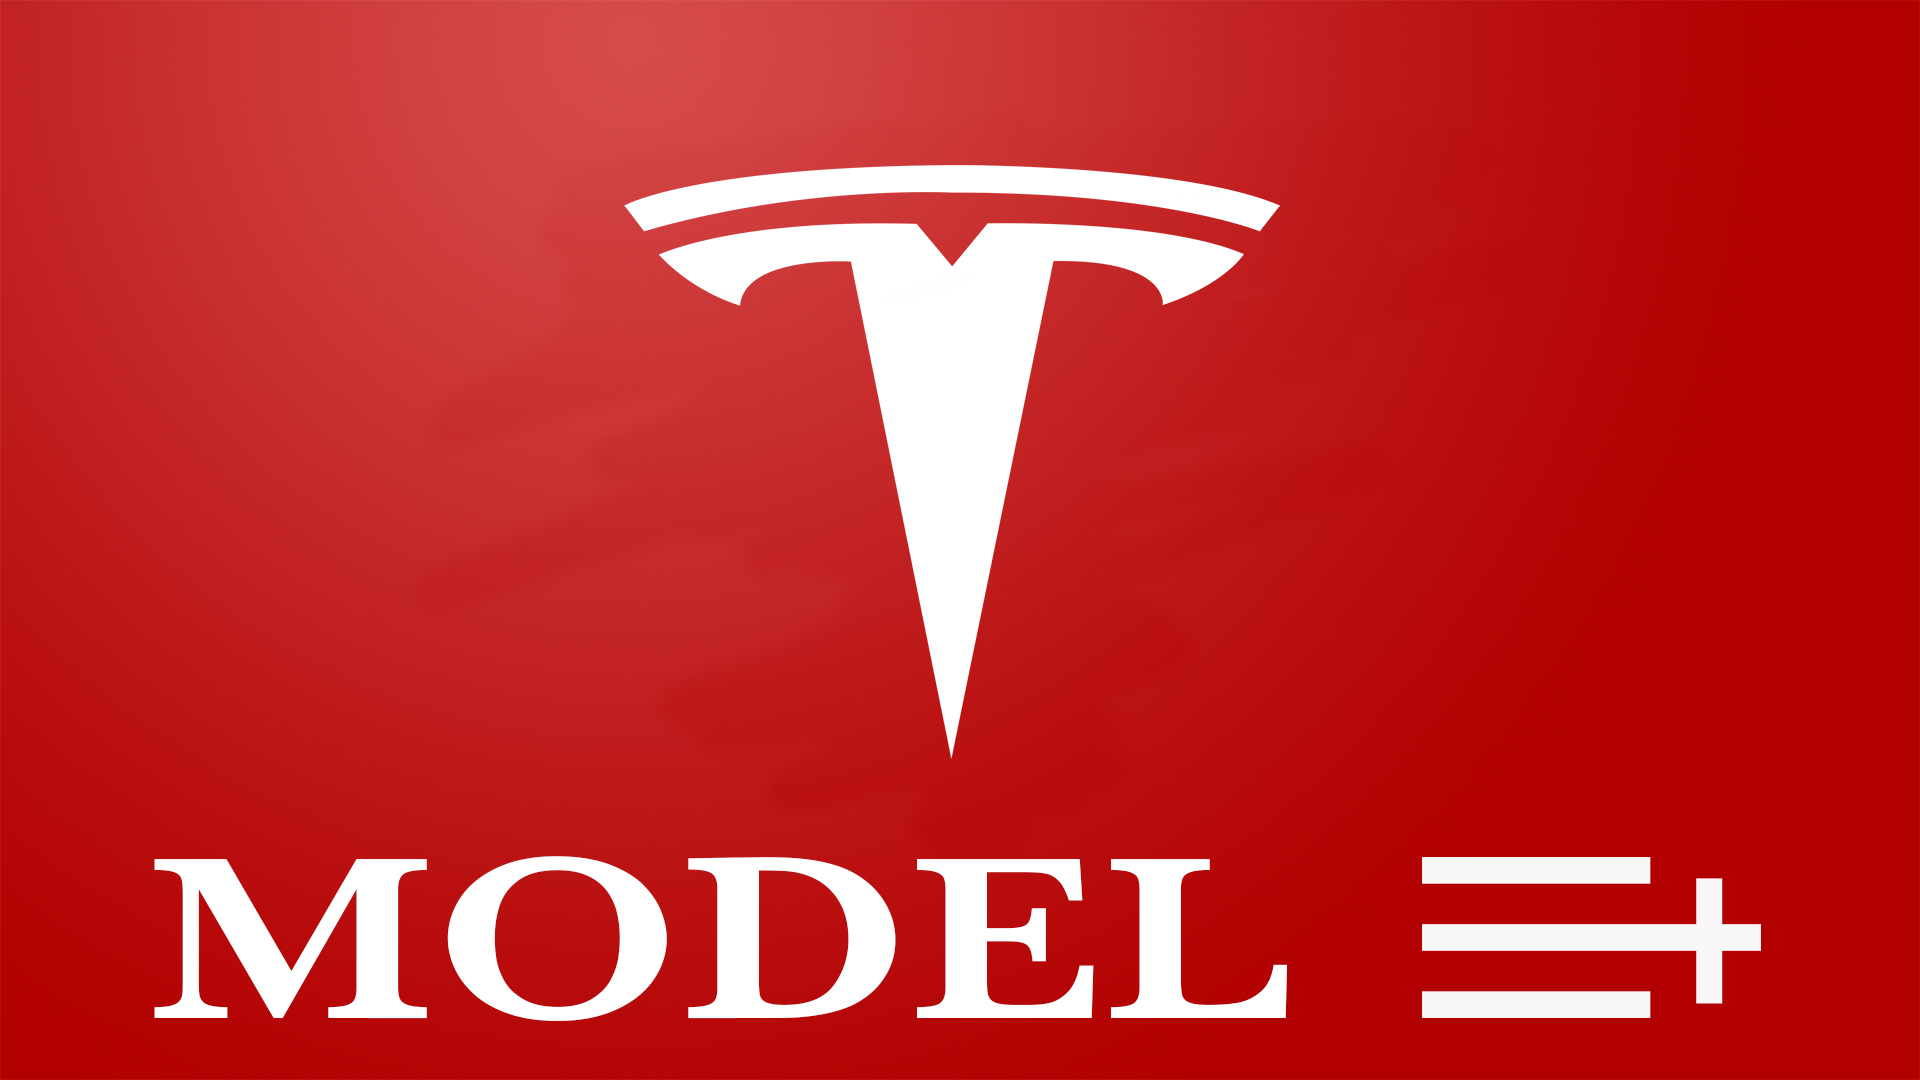 Tesla model 3 concept anants world the tesla model 3 will be one of teslas newest forays into the electric car segment it will rival the likes of the bmw 3 series audi a4 biocorpaavc